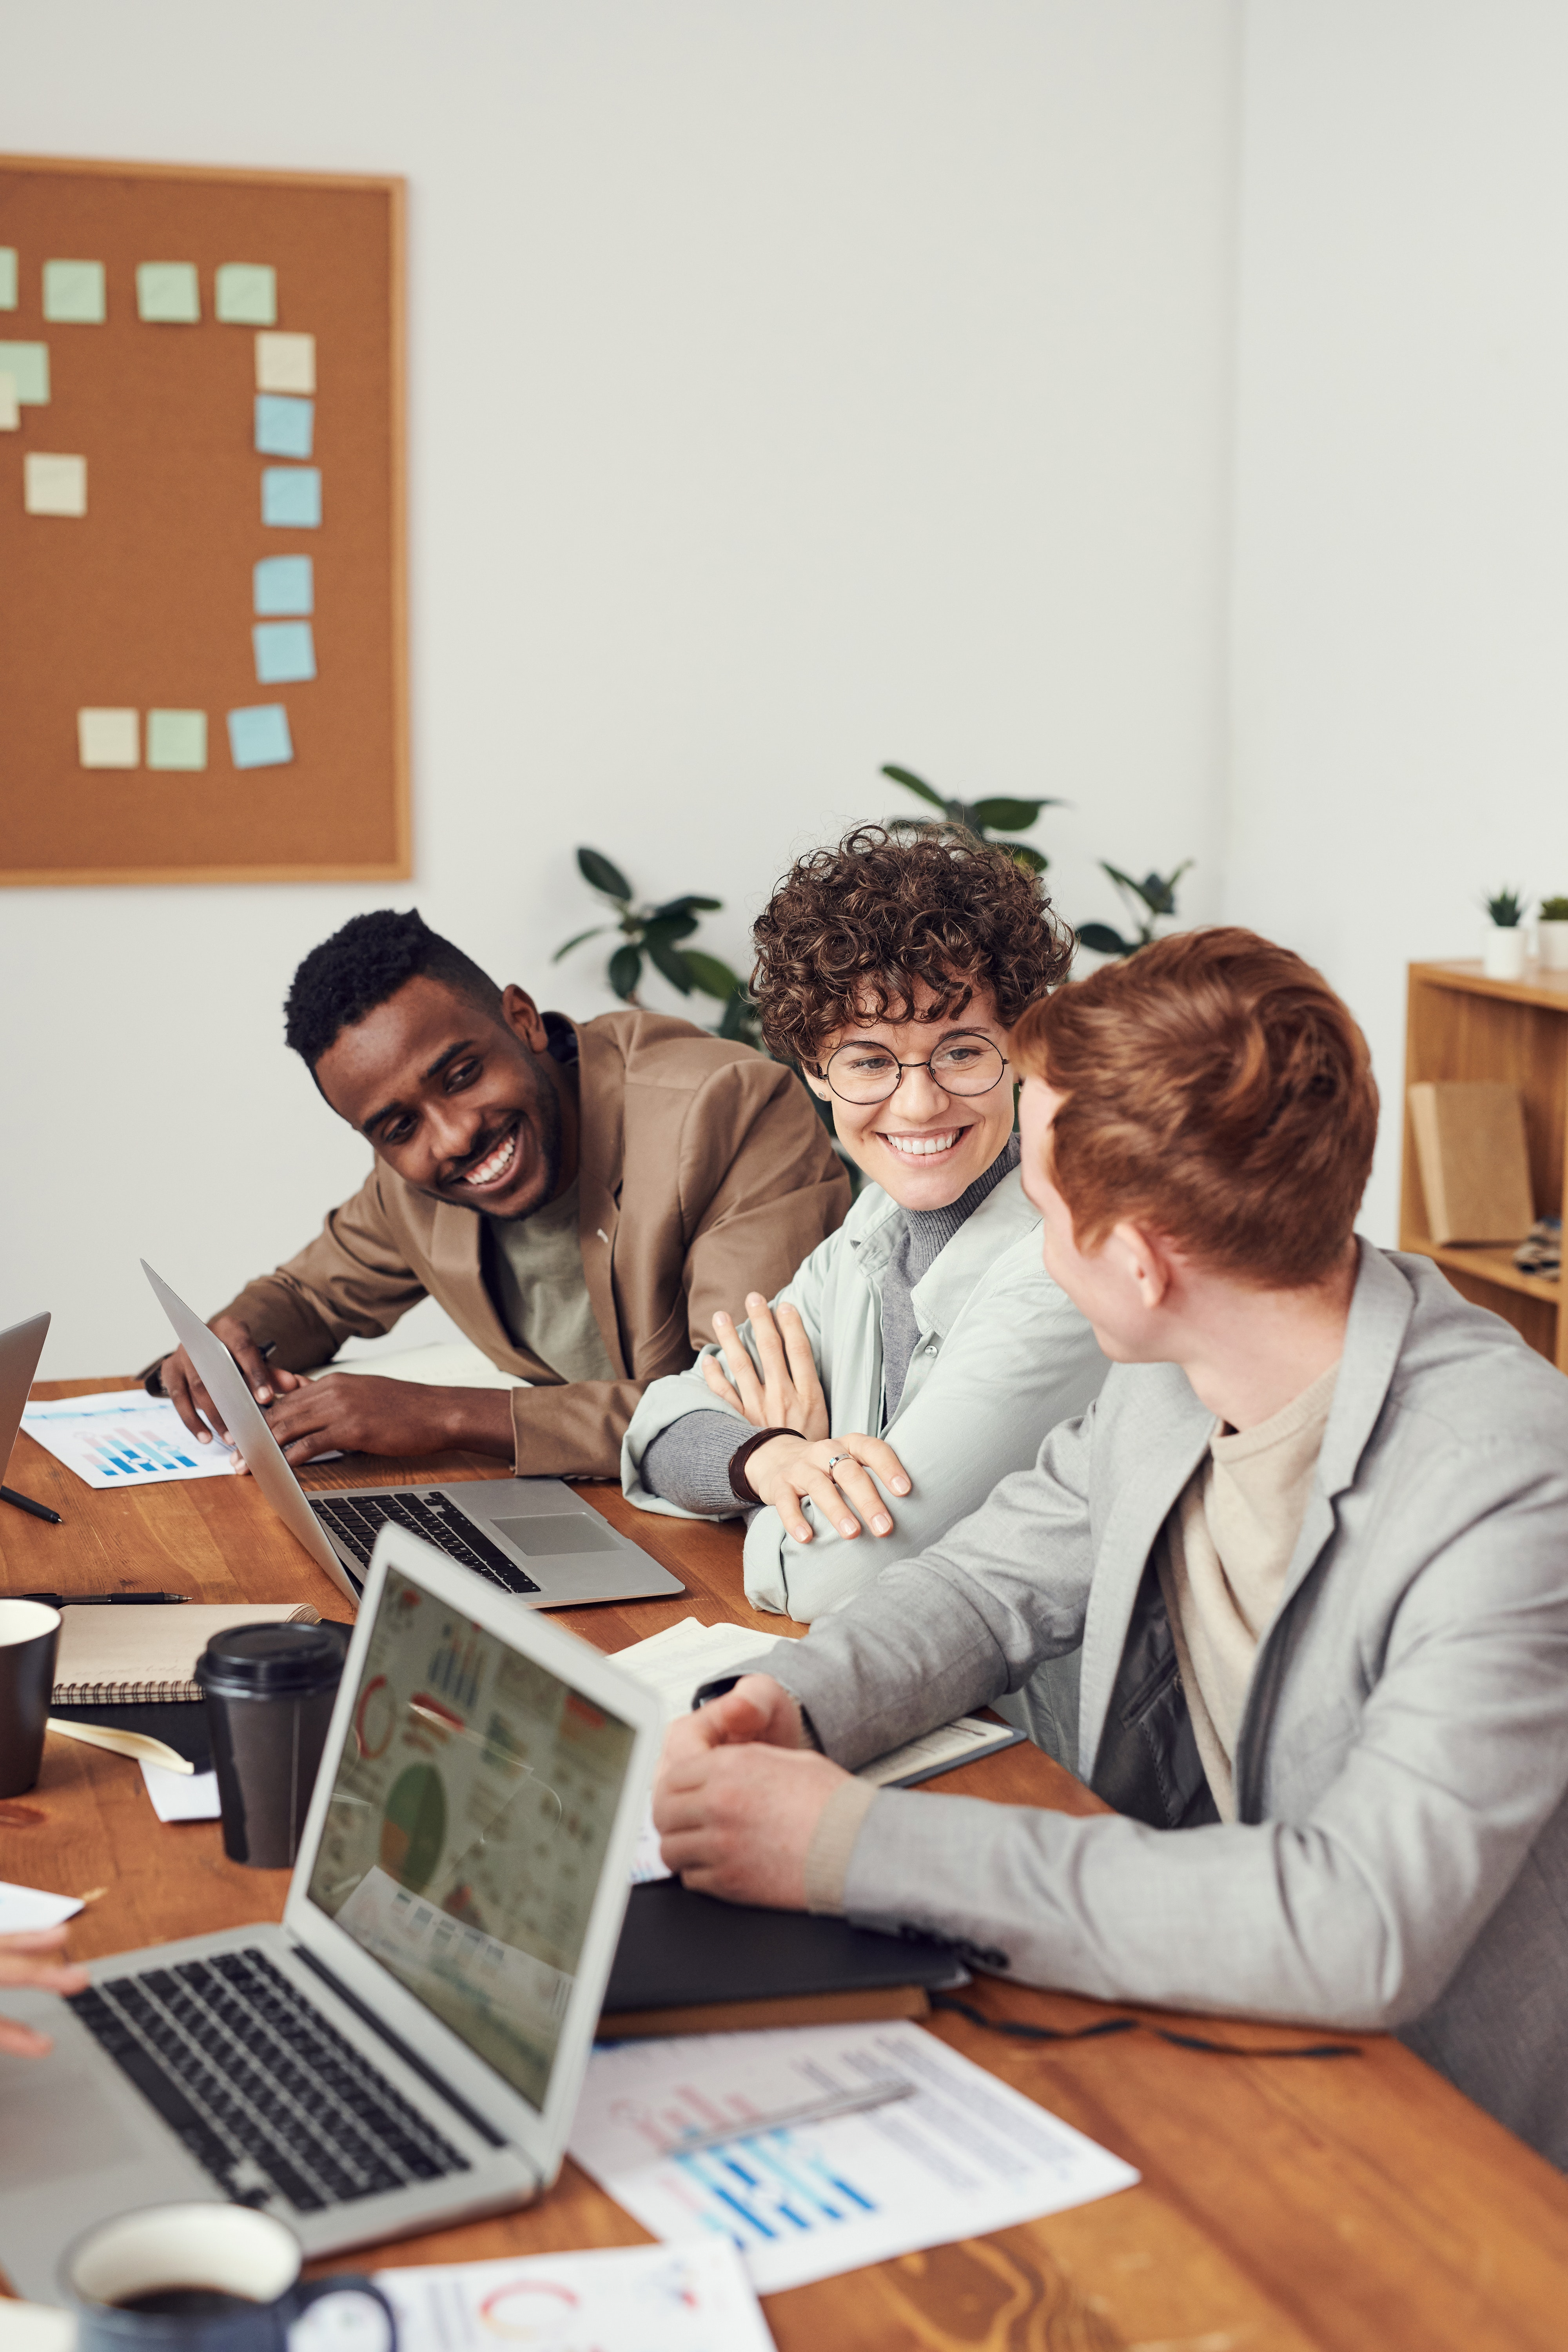 Three people smiling and working together as a team on a project.